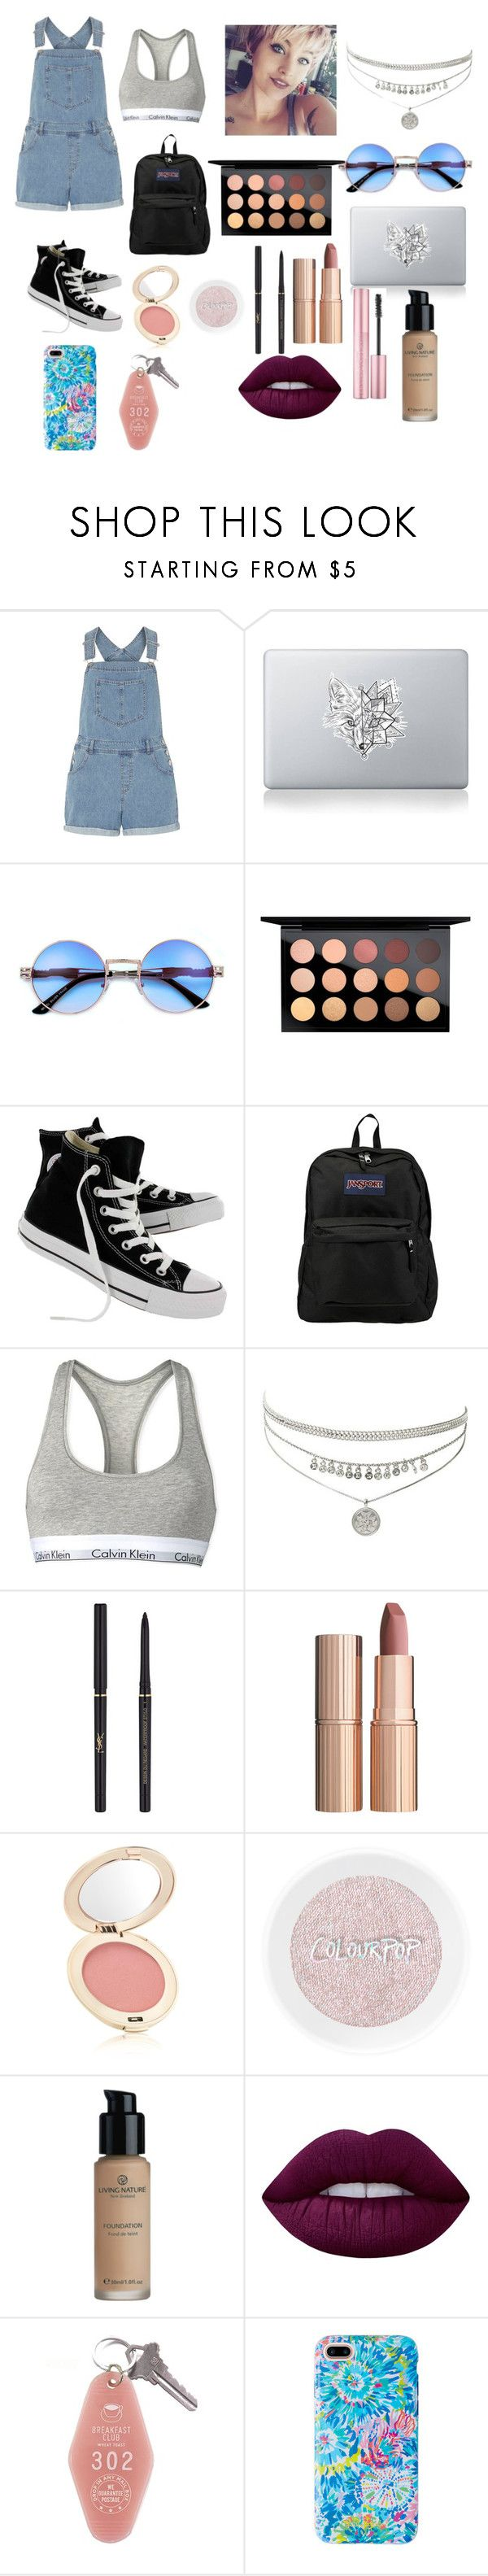 """""""What I would wear to hangout with my friends"""" by jordyncyprian ❤ liked on Polyvore featuring Dorothy Perkins, Vinyl Revolution, MAC Cosmetics, Converse, JanSport, Calvin Klein, Yves Saint Laurent, Charlotte Tilbury, Jane Iredale and Lime Crime"""